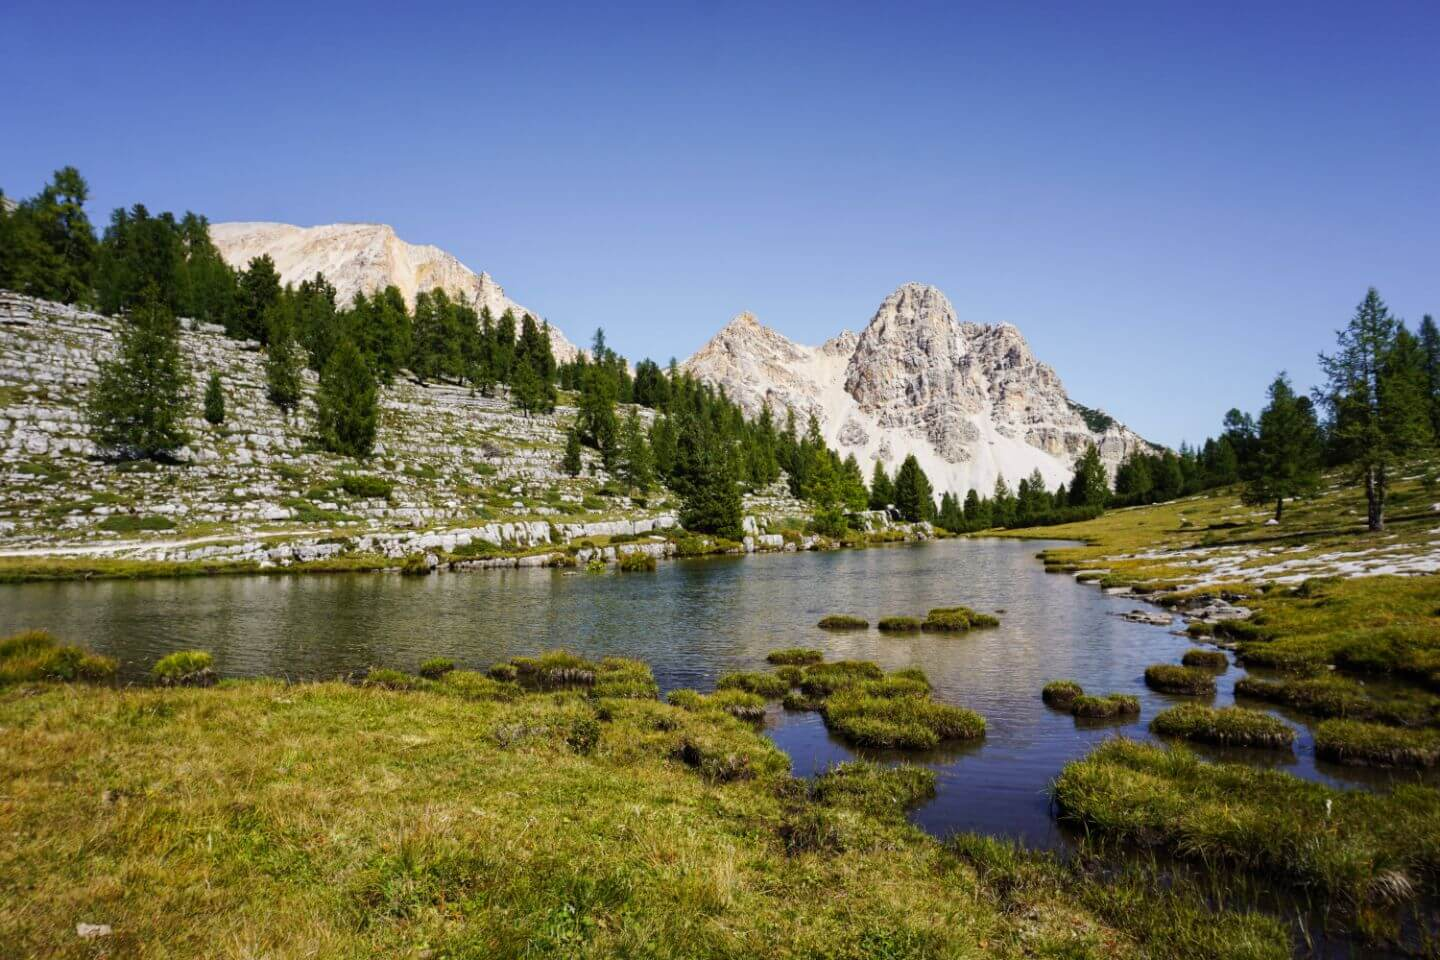 Rifugio Fanes Hike - Alta Badia Hiking Trails